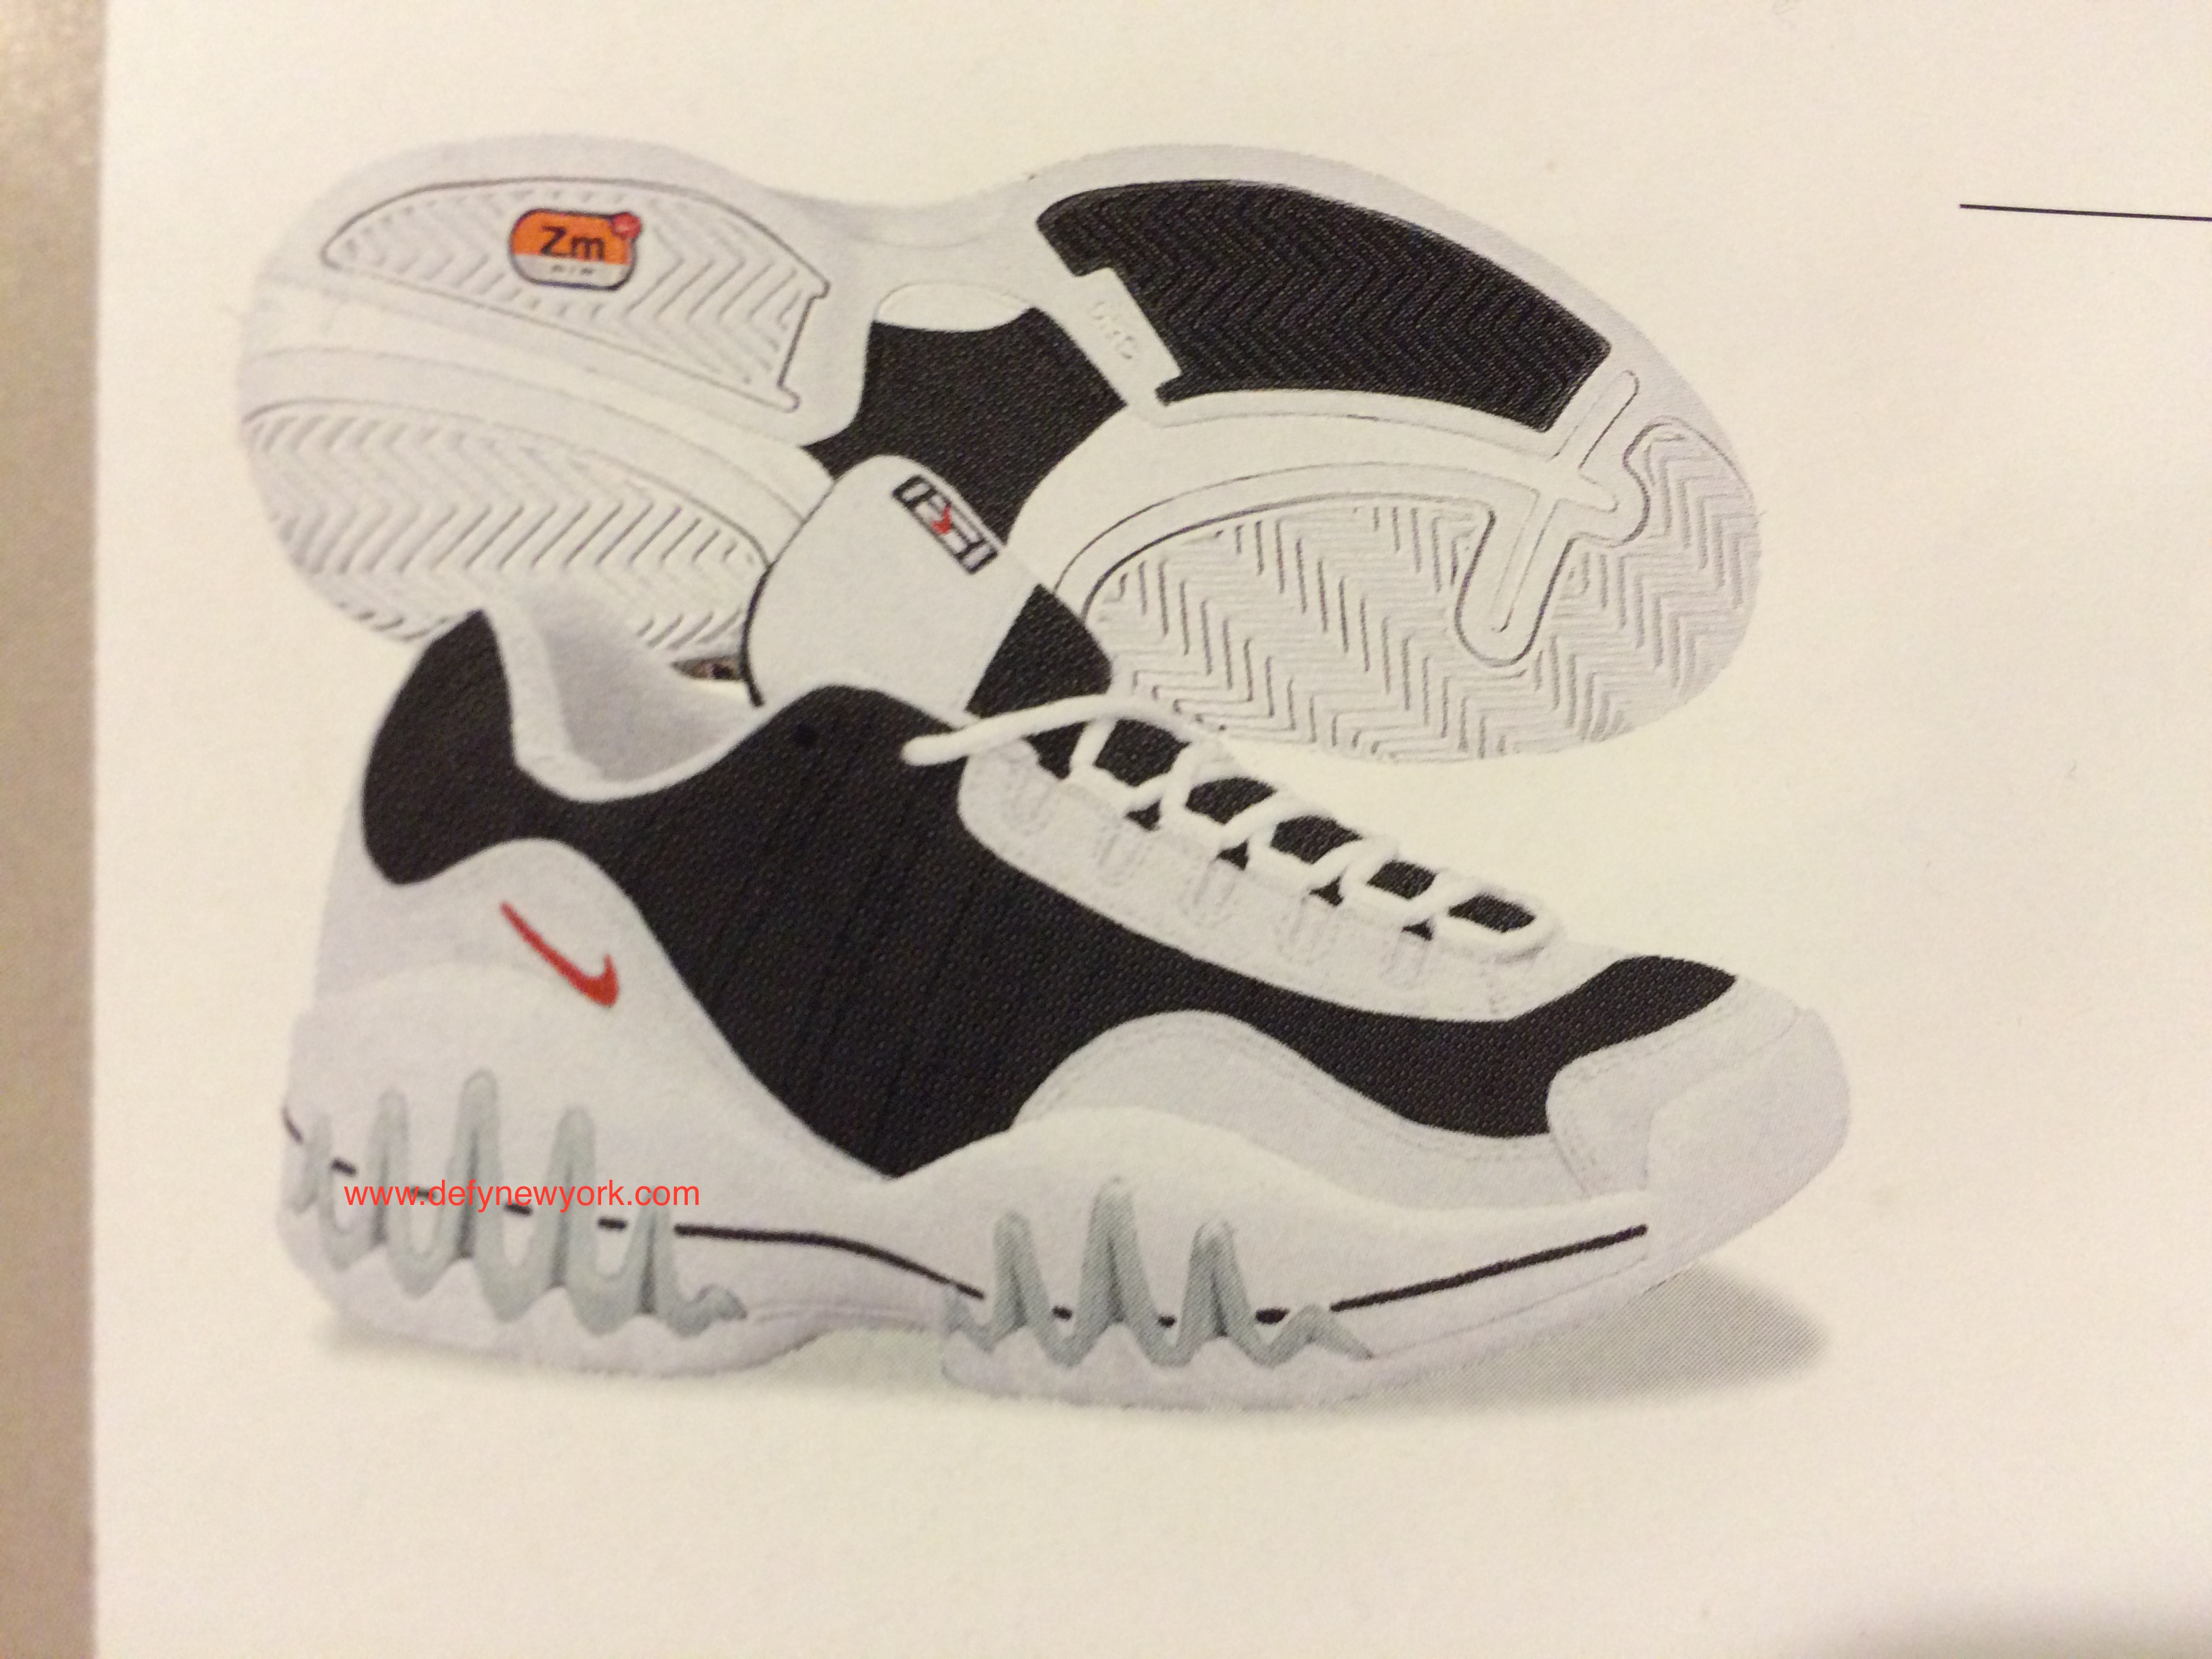 nike zoom tennis nike acg shoes